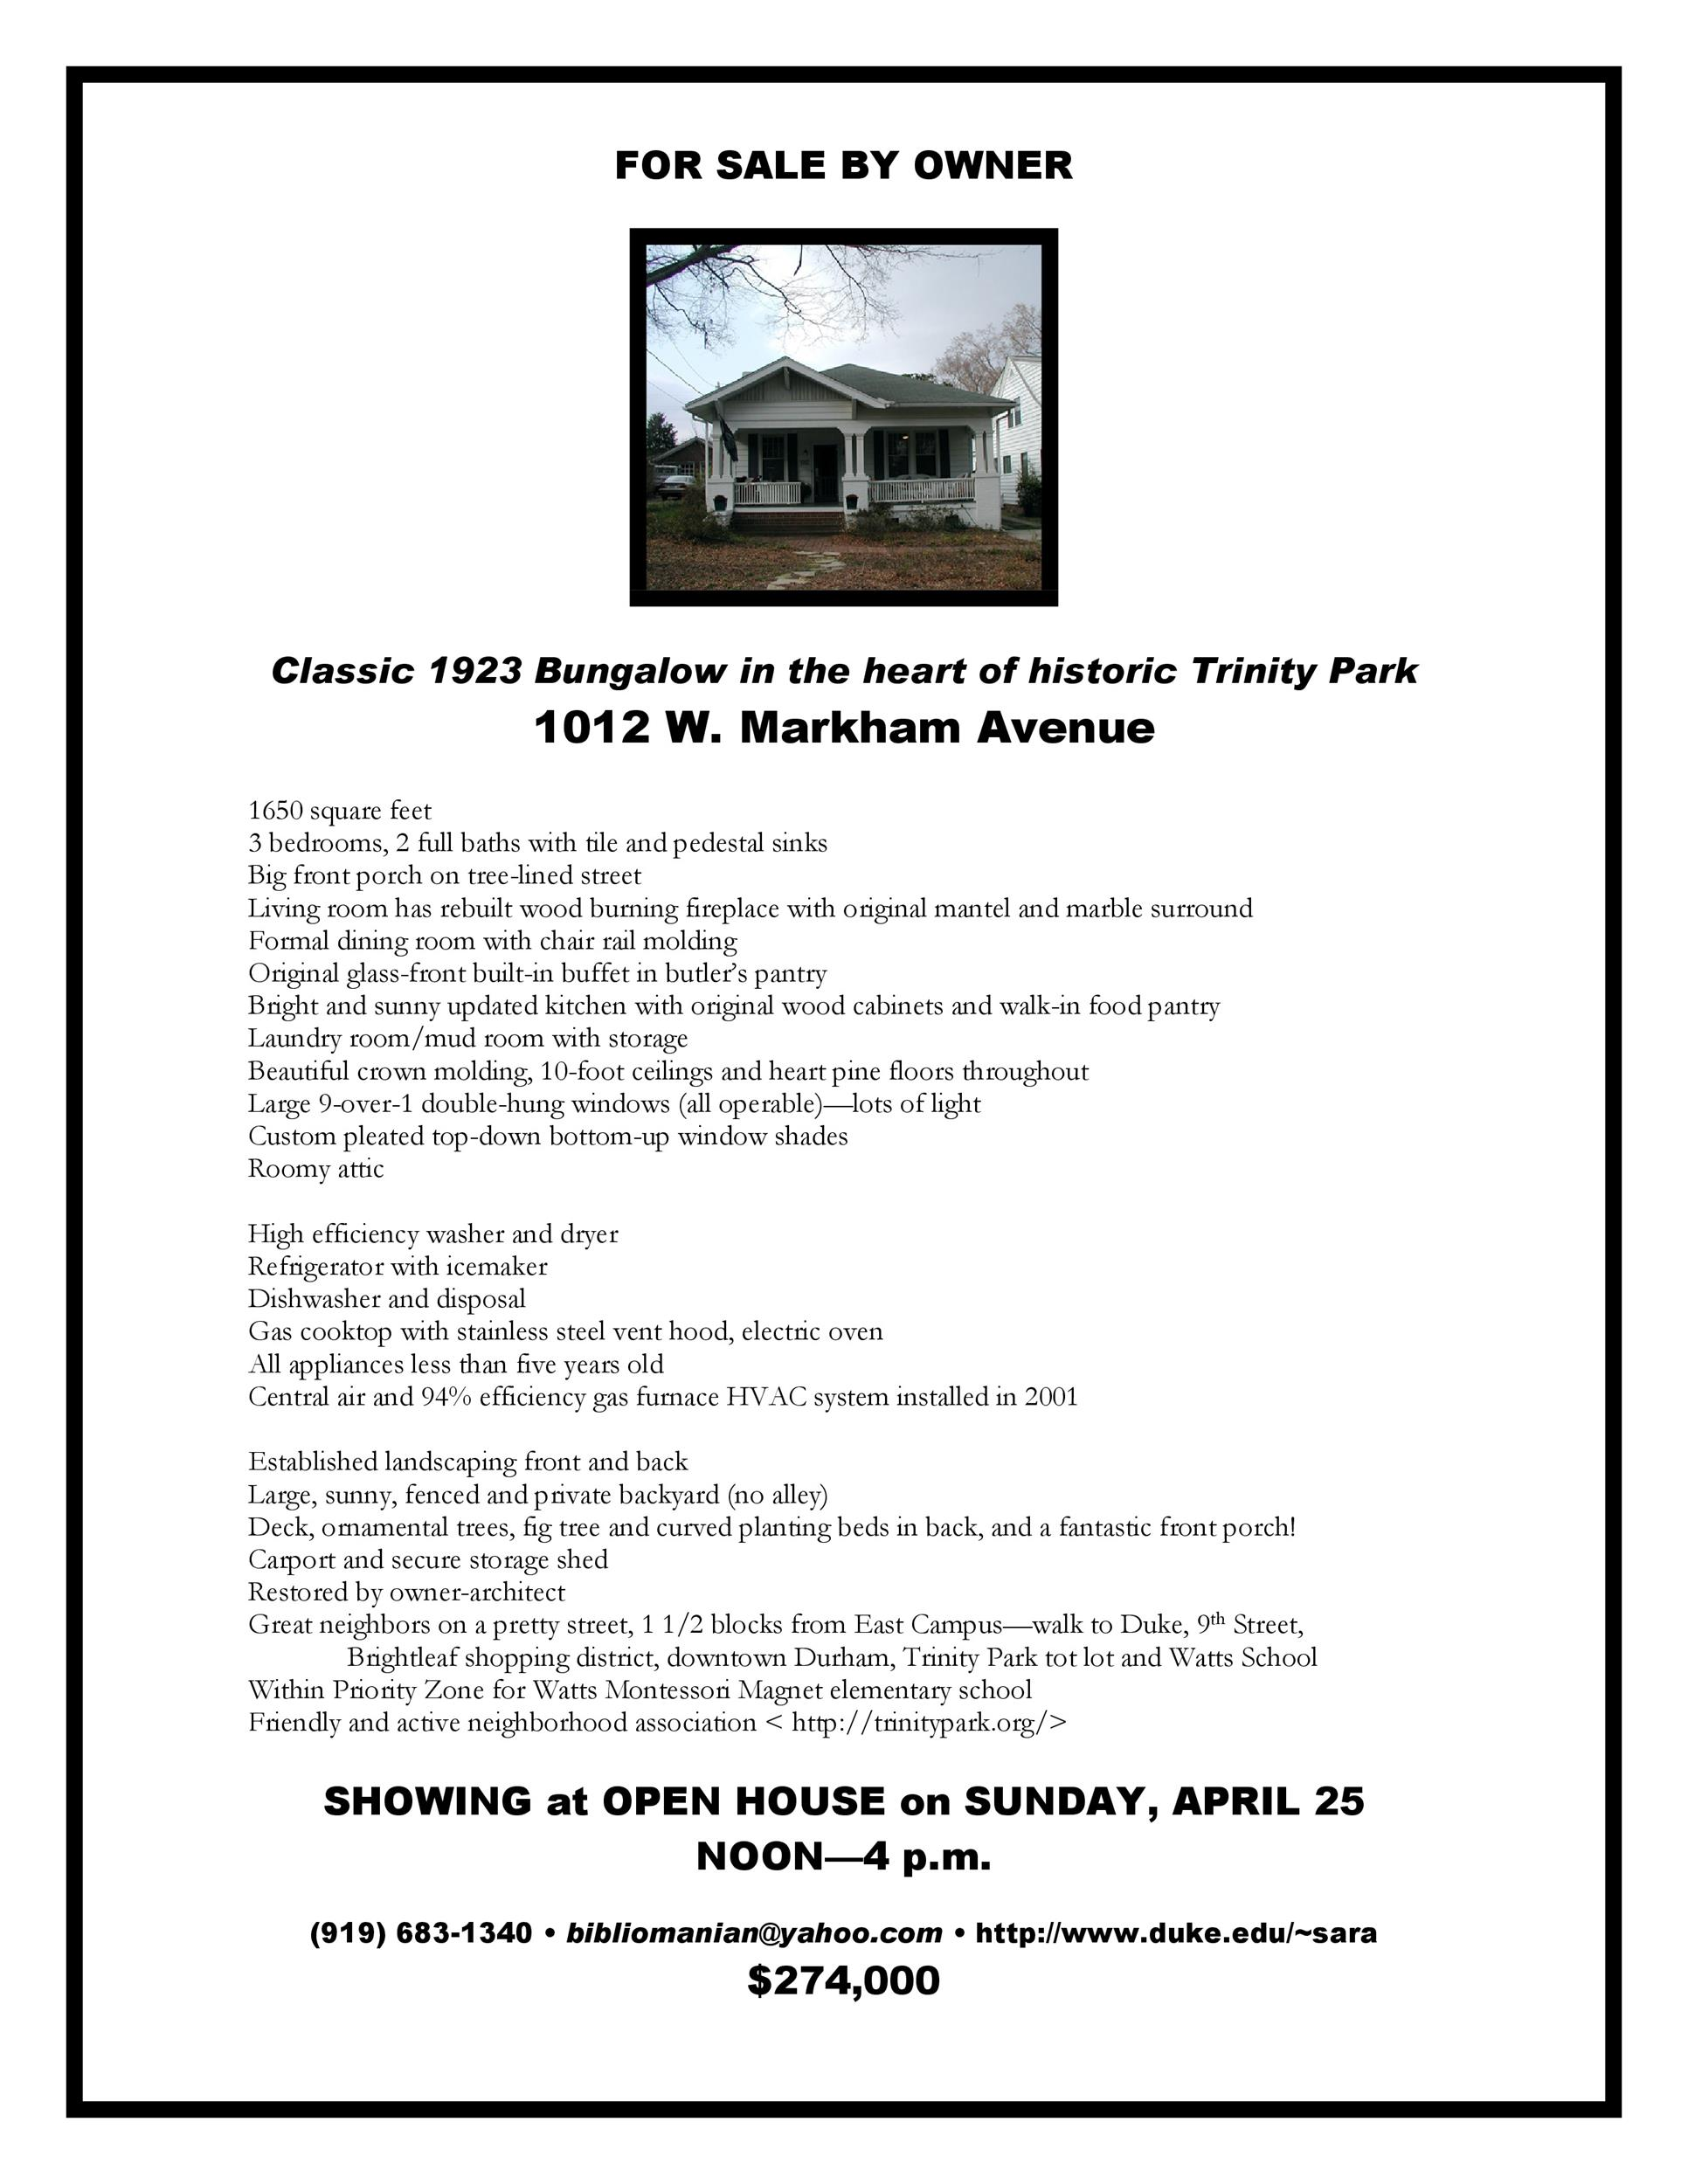 Free house for sale flyer 39